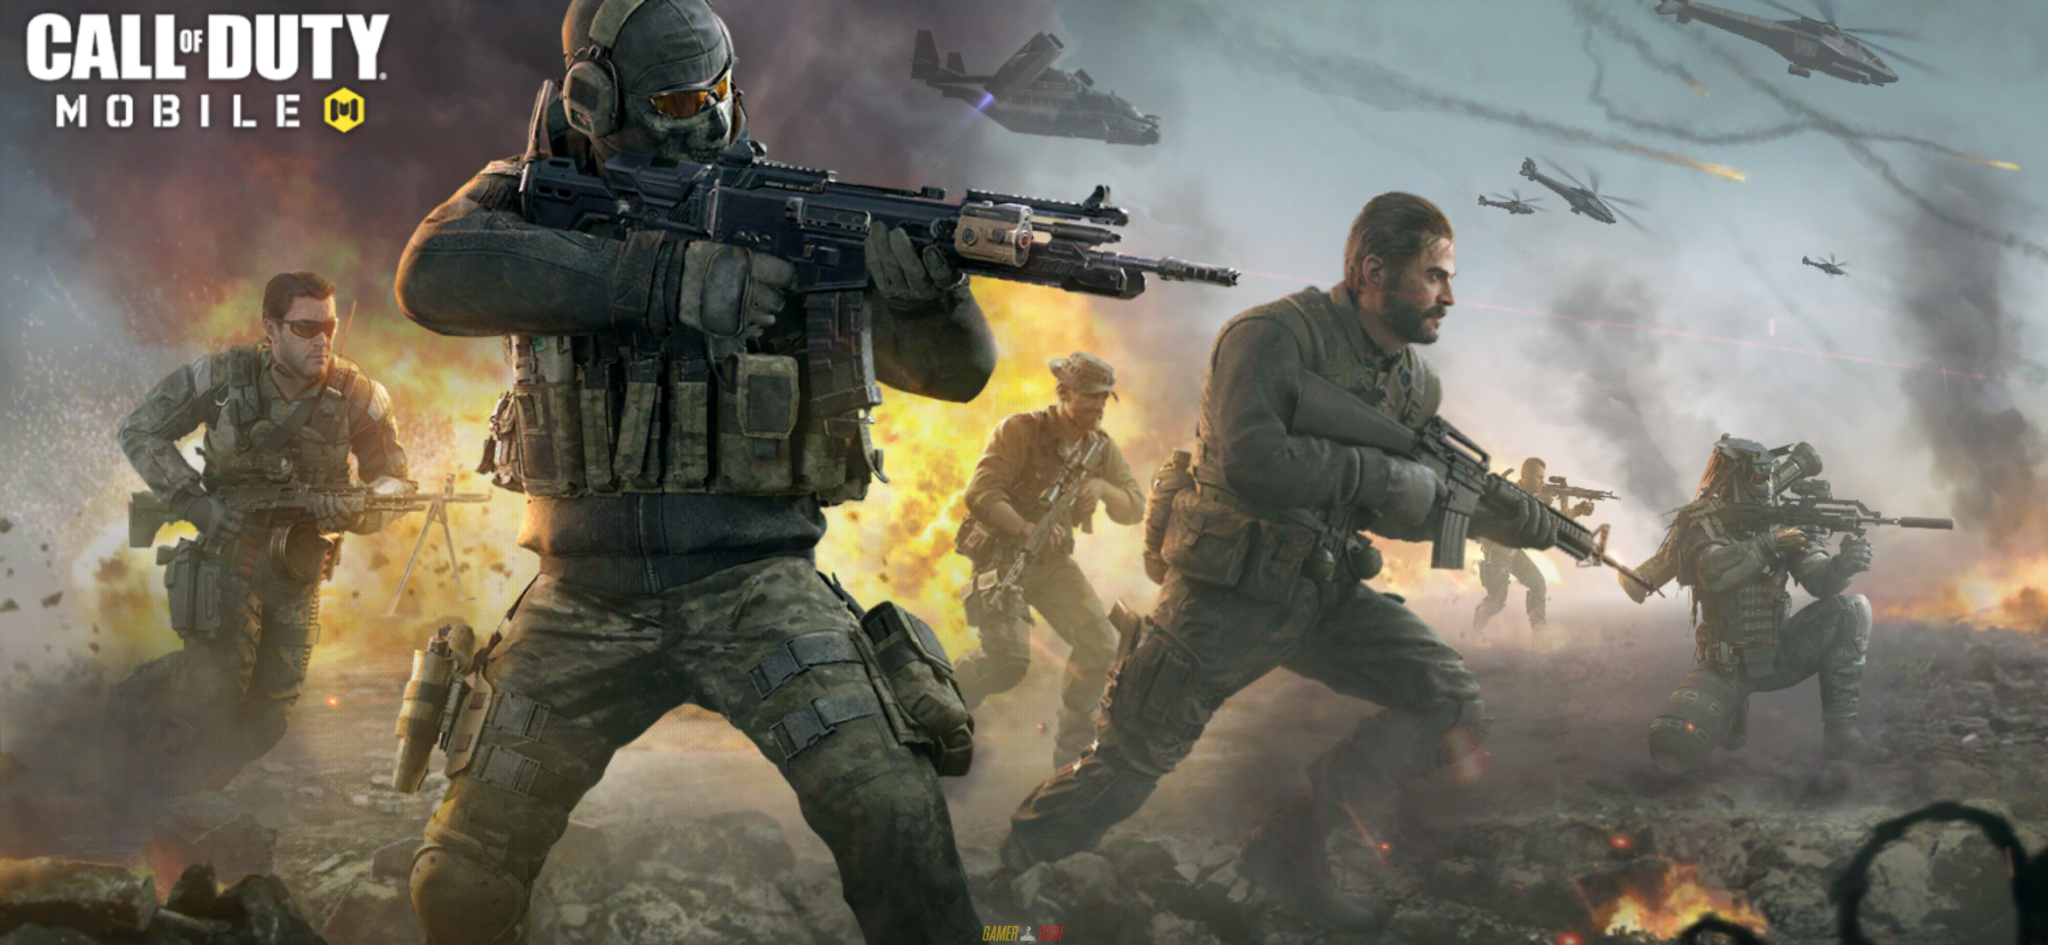 Call of Duty Mobile 1.0.8.0 iOS Full WORKING Game Mod Free Download